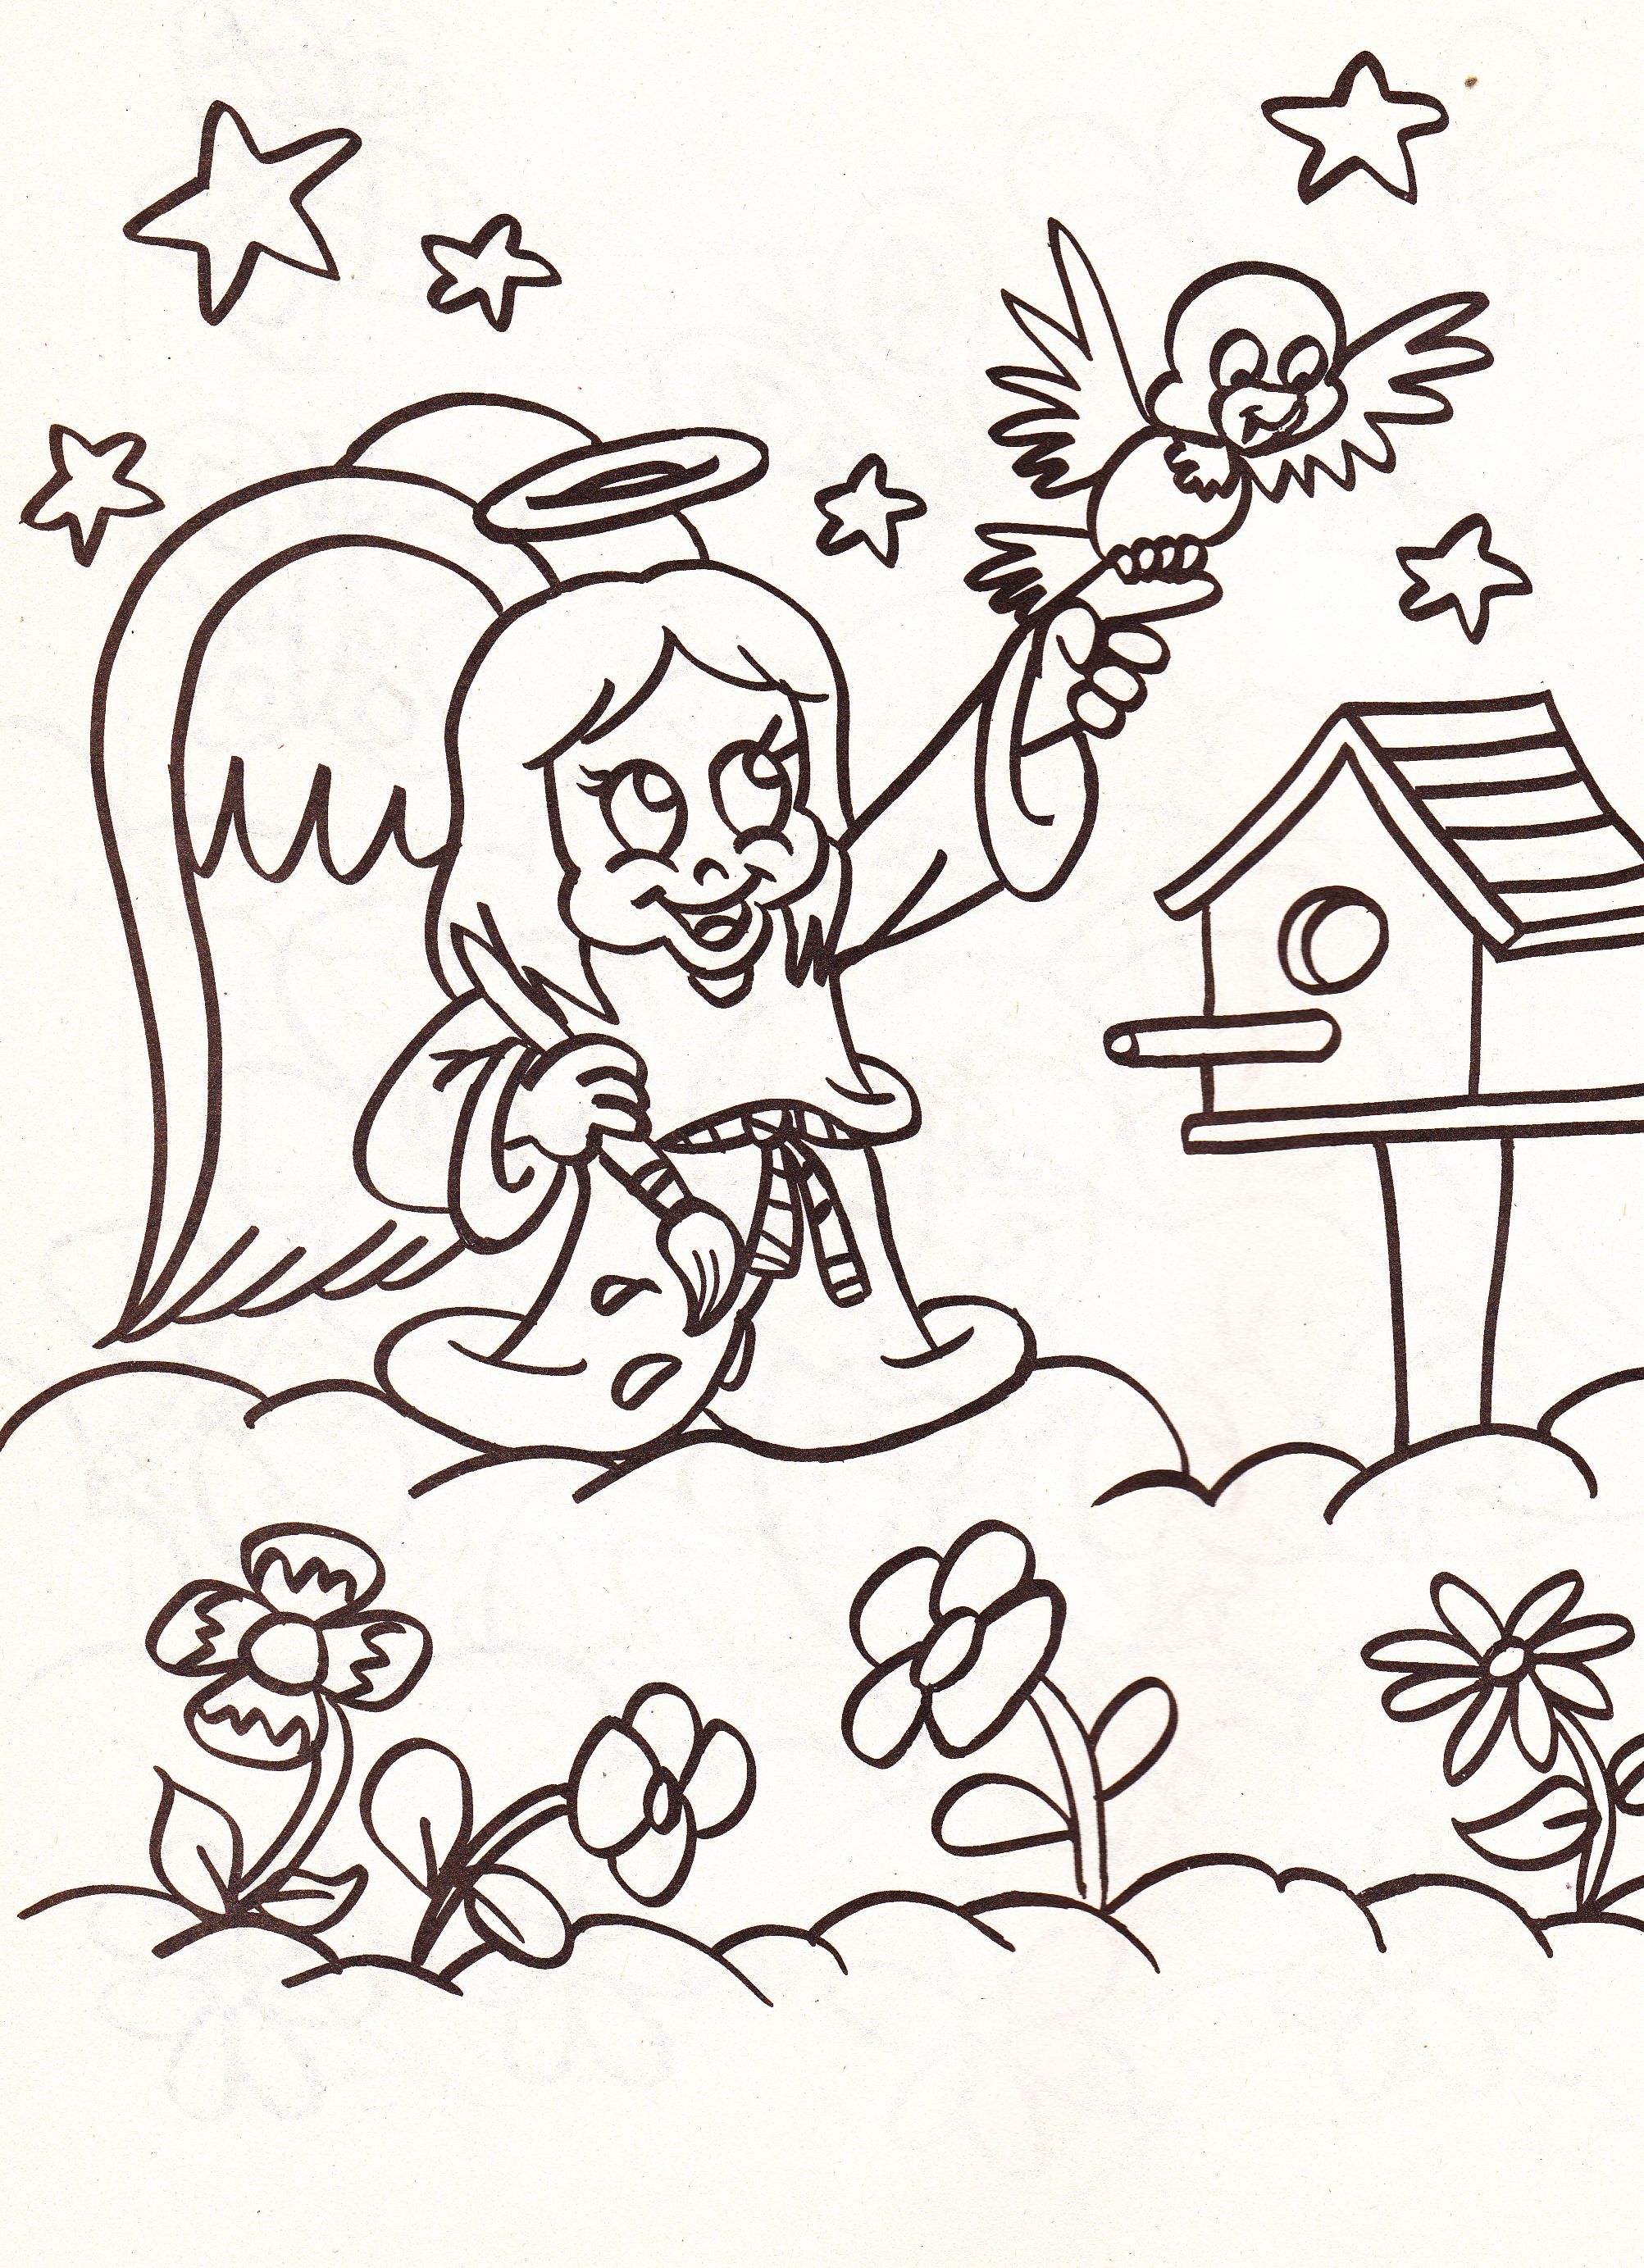 Coloring book pages angels - From An Angels Coloring Book Girl Angel Painting With Bird Birdhouse And Flowers In